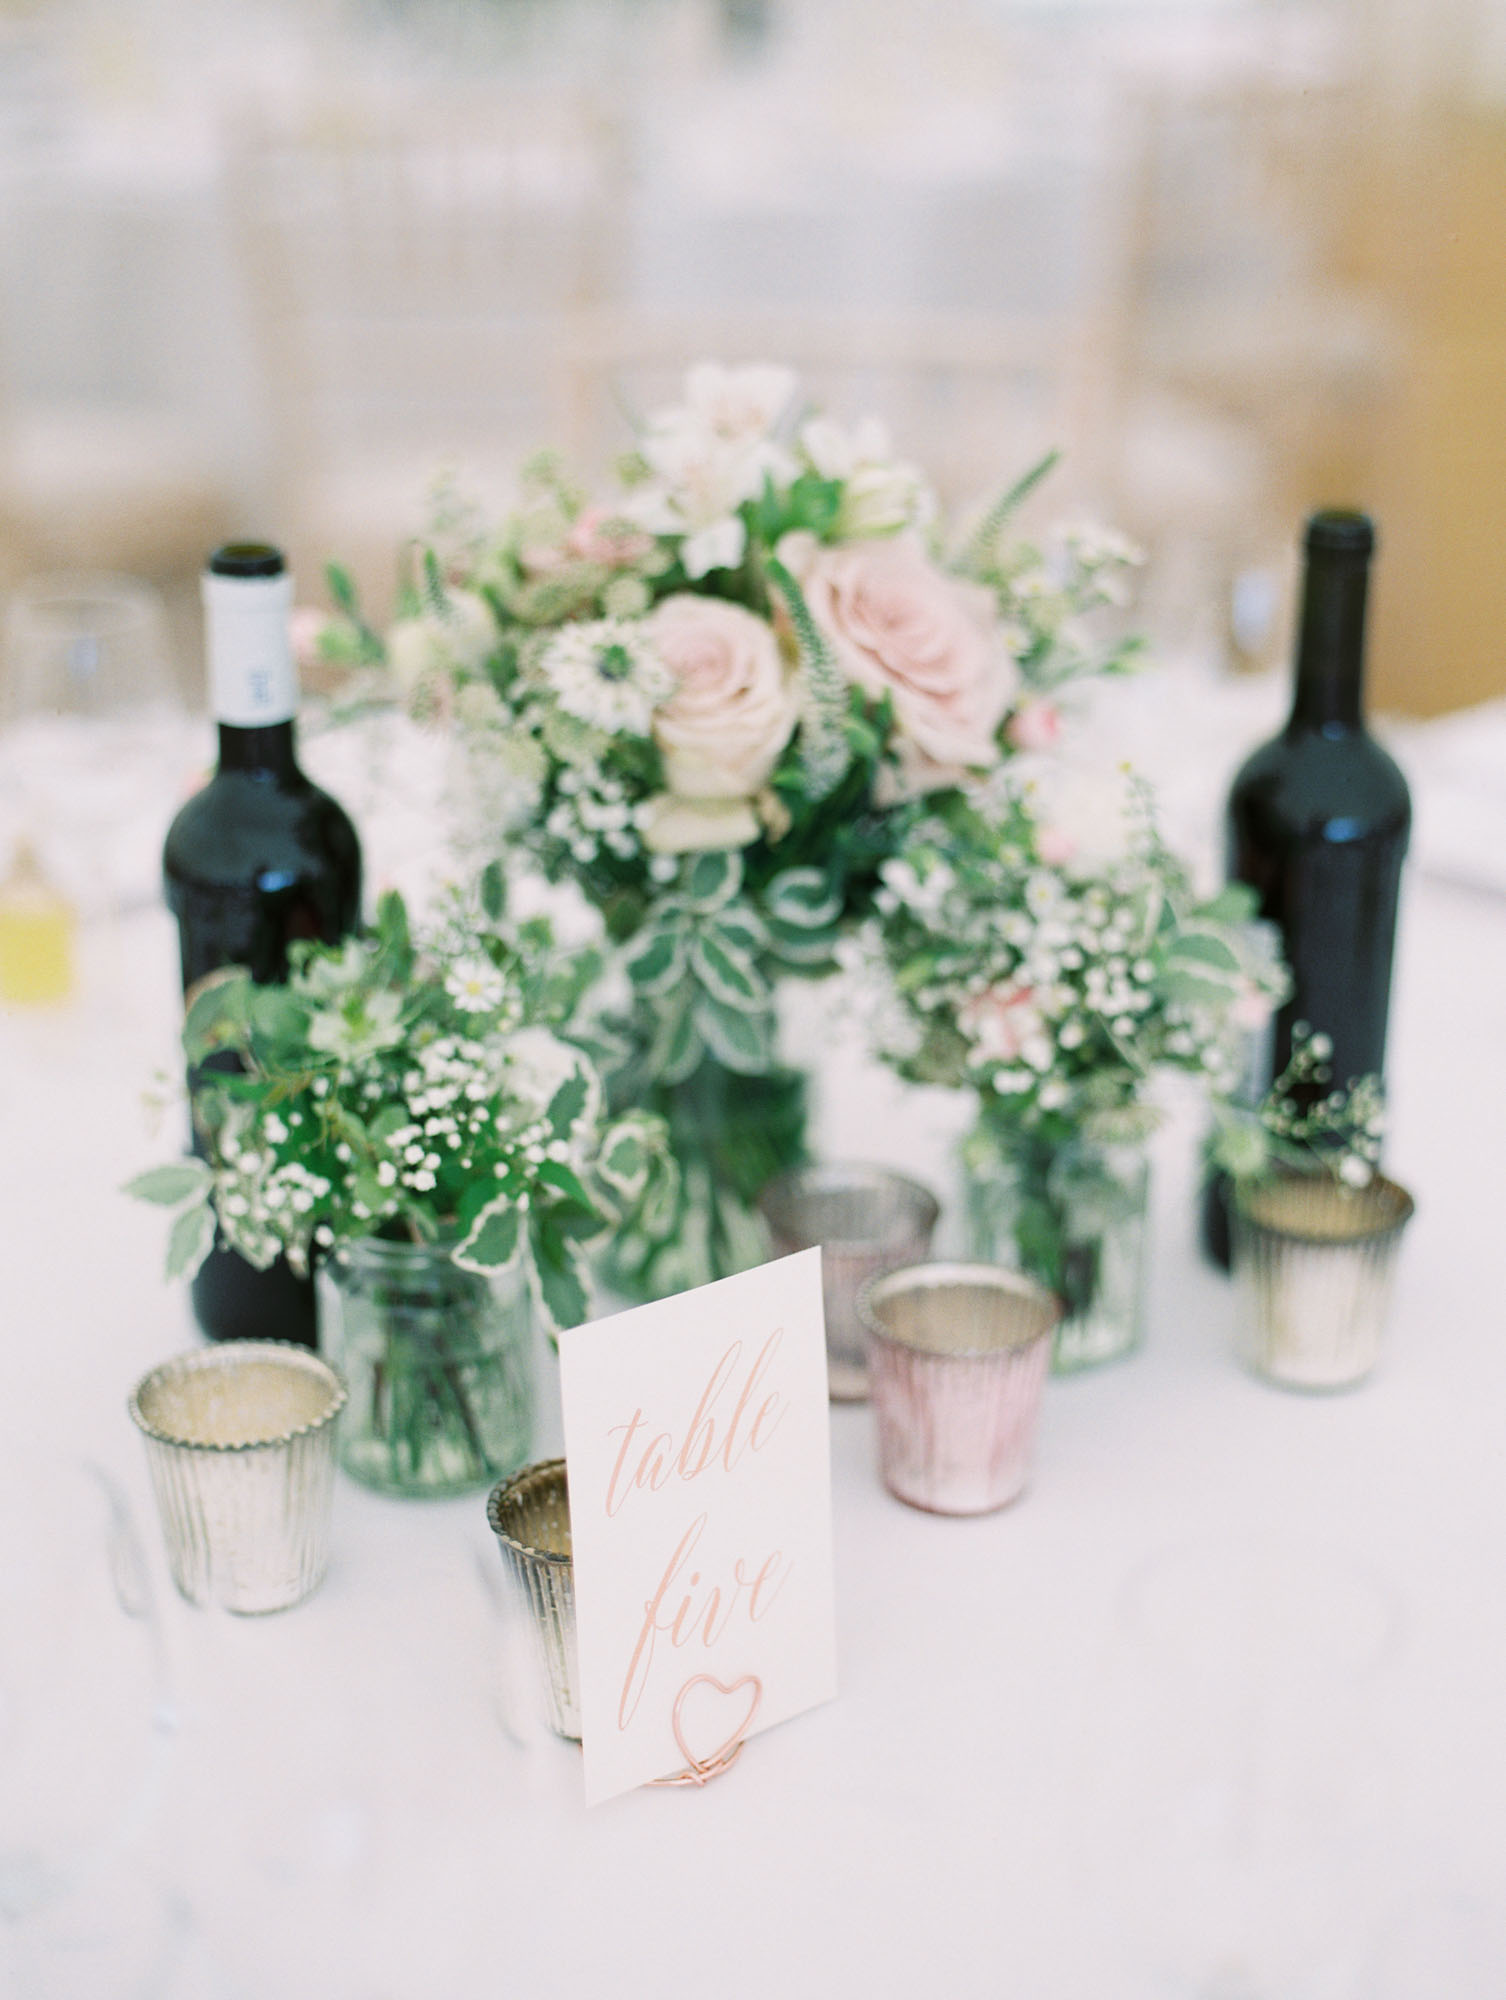 Calligraphy table names and metallic tea light wedding decor